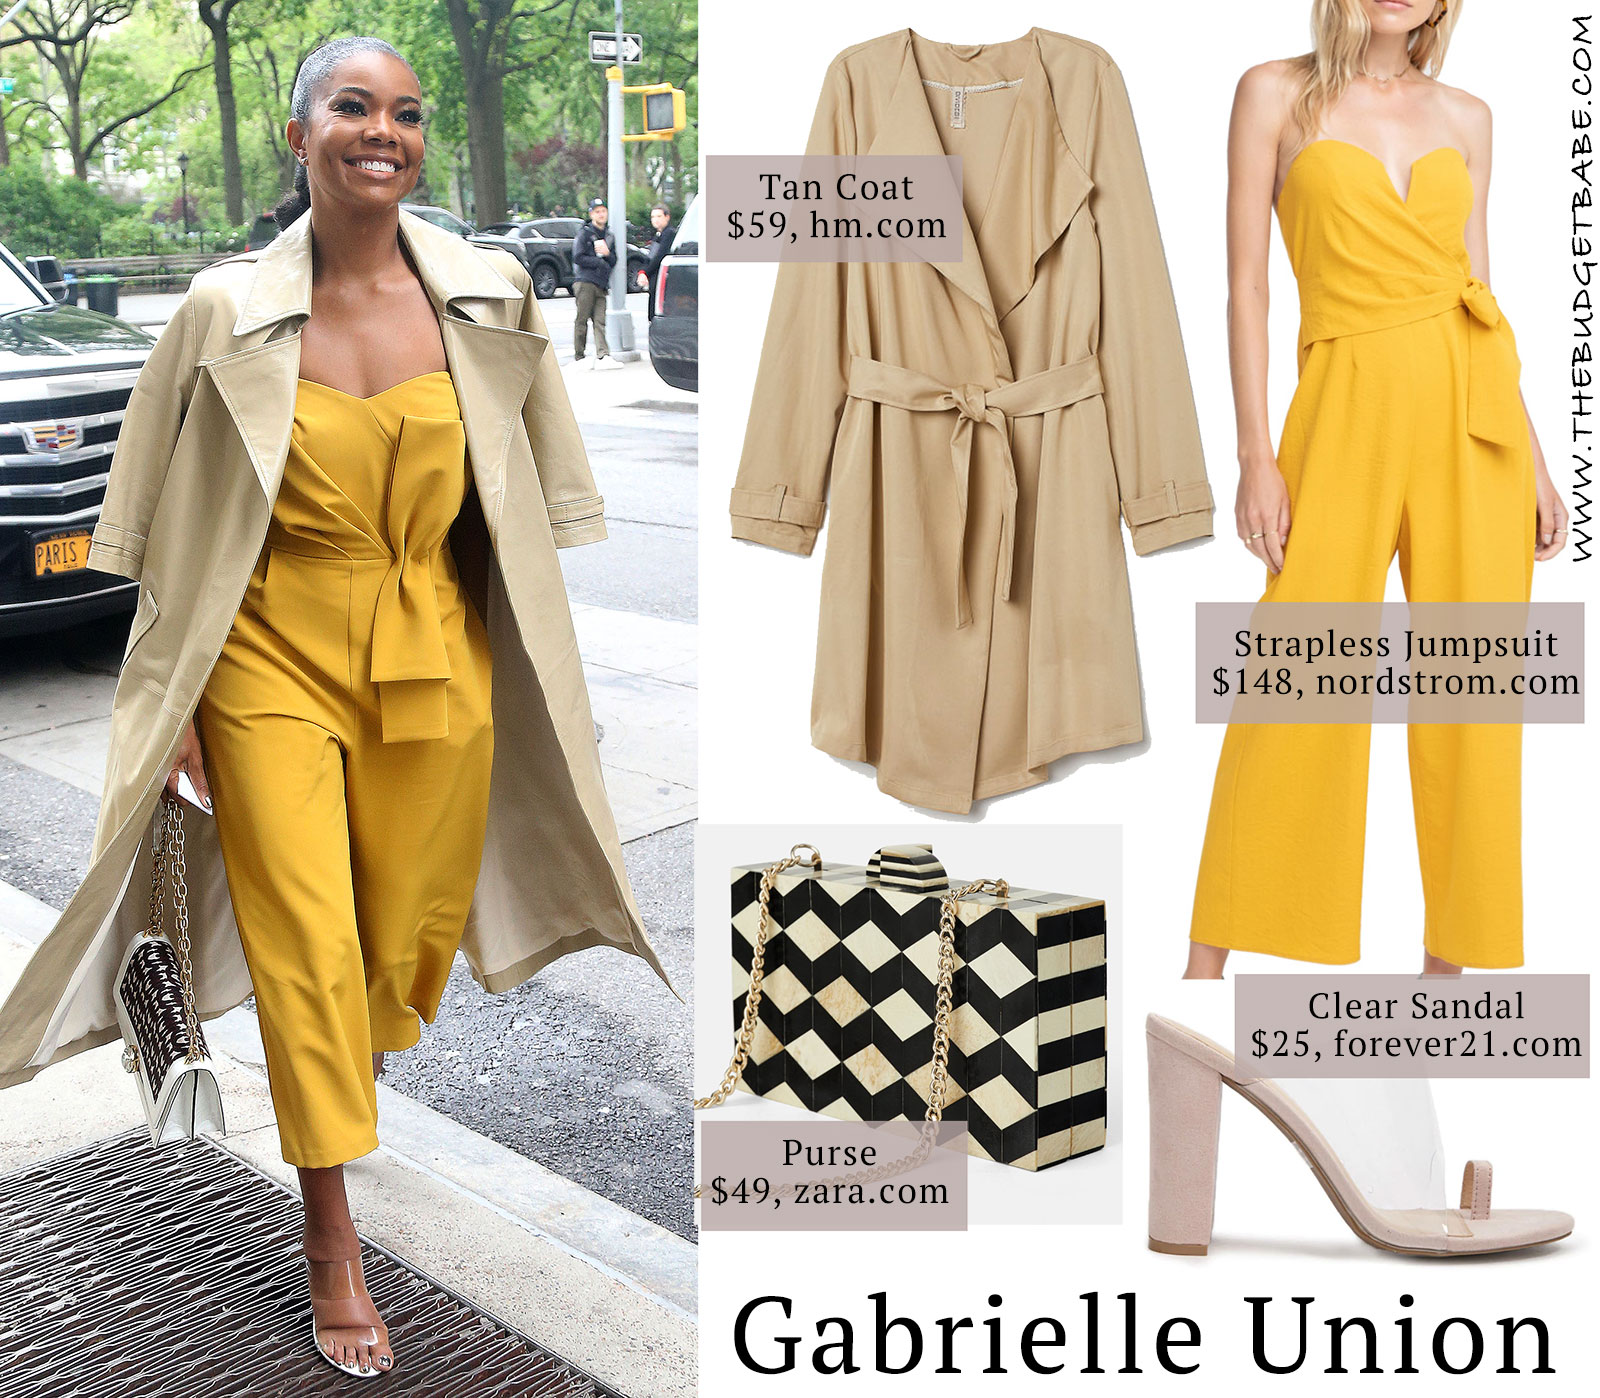 new style 45dfa b2b88 Gabrielle Union s yellow jumpsuit and clear sandals look for less